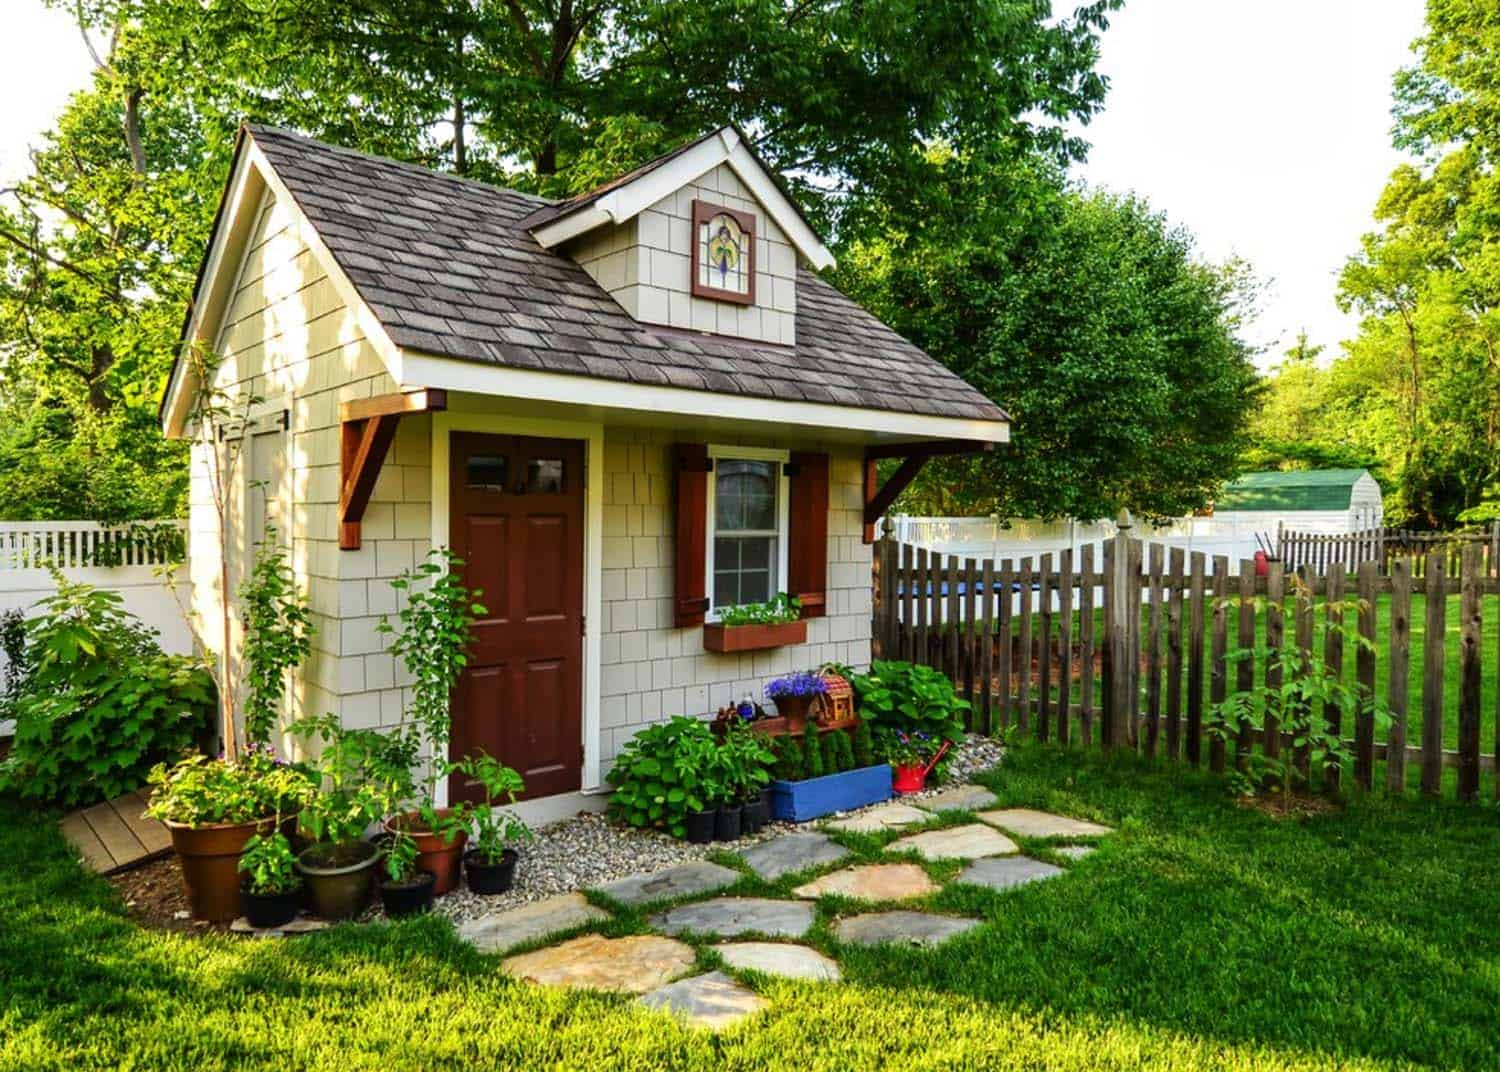 40 simply amazing garden shed ideas for Garden building design ideas